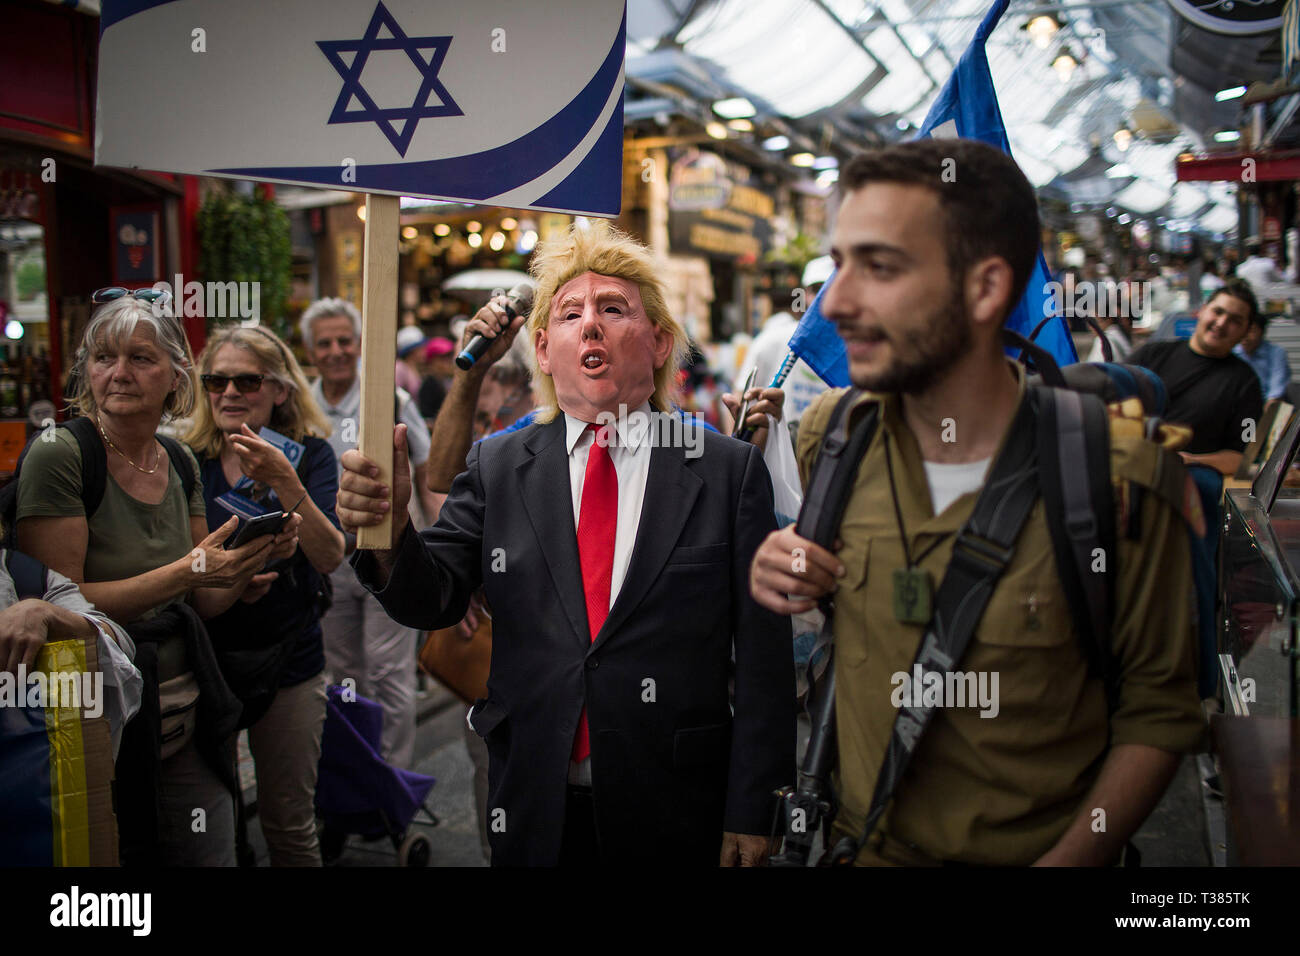 Jerusalem, Middle East. 7th Apr, 2019. A supporter of the Likud party, is seen dressed as US President Donald Trump, as he walks in the Mahane Yehuda Market, ahead of the Israeli general elections that is scheduled to take place on 09 April. Credit: Ilia Yefimovich/dpa/Alamy Live News - Stock Image